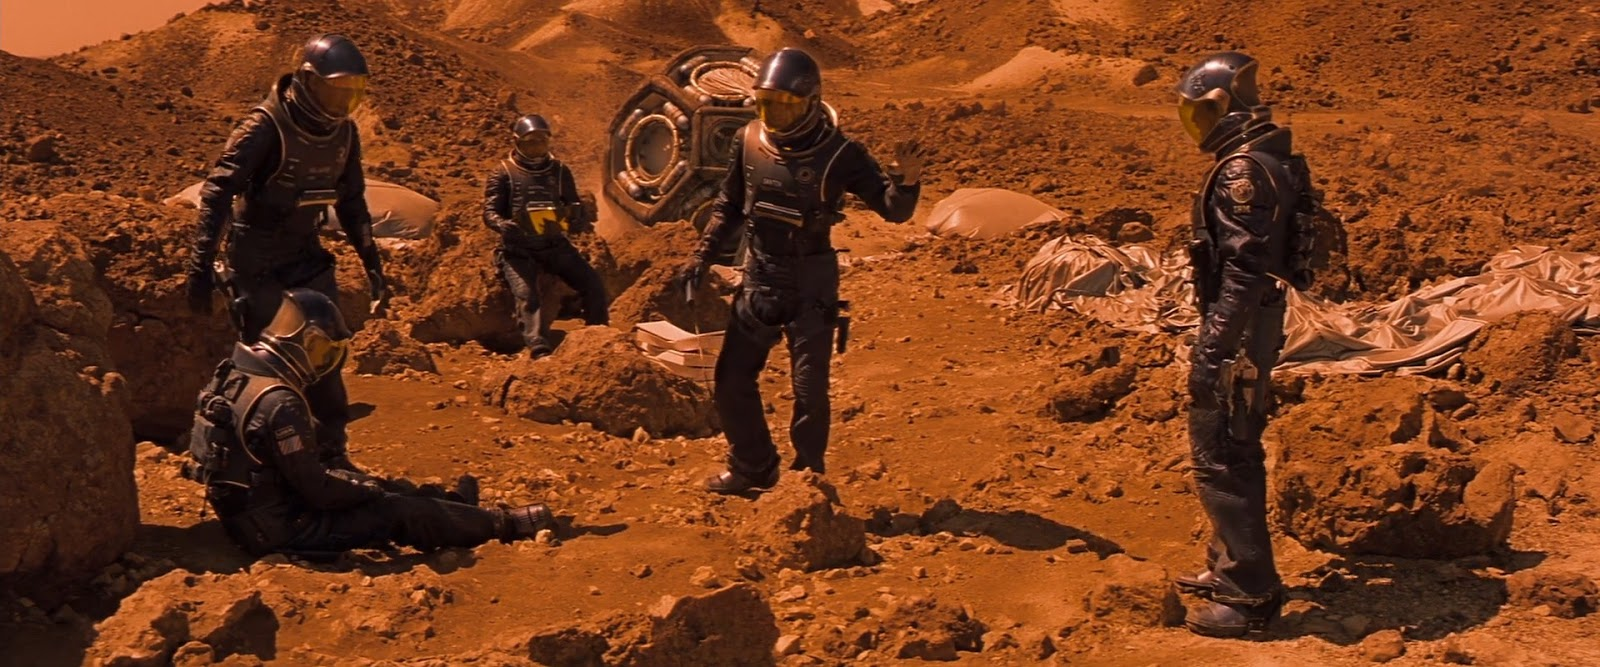 a review of a film based on a martian sends a postard home The martian (weir novel) the martian, a film adaptation directed by ridley scott and starring matt damon, was released in october 2015 kirkus reviews called the martian sharp, funny and thrilling, with just the right amount of geekery.